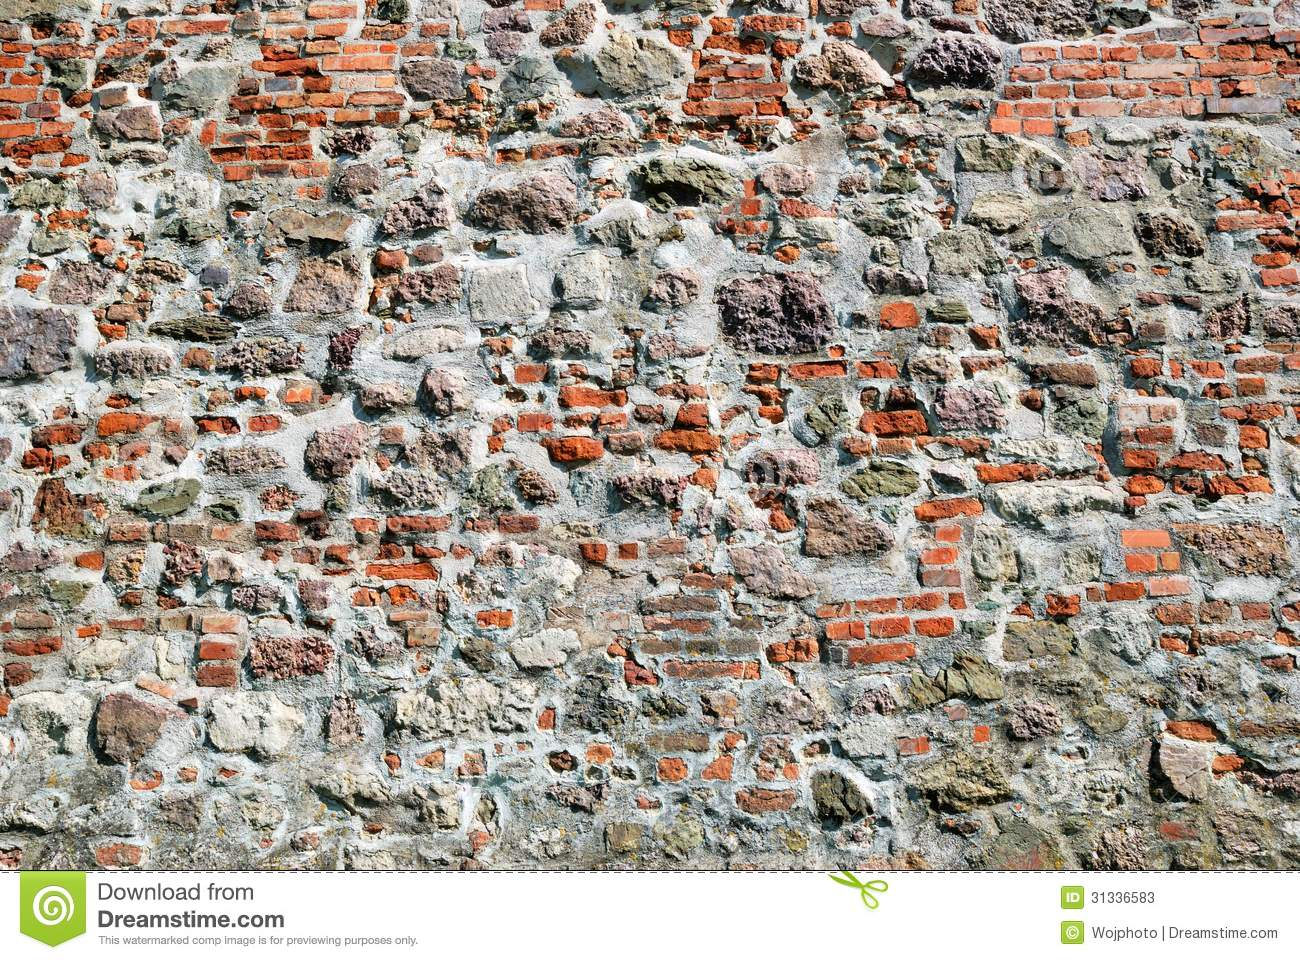 Red Brick Stone : Old red brick stone wall stock photos image